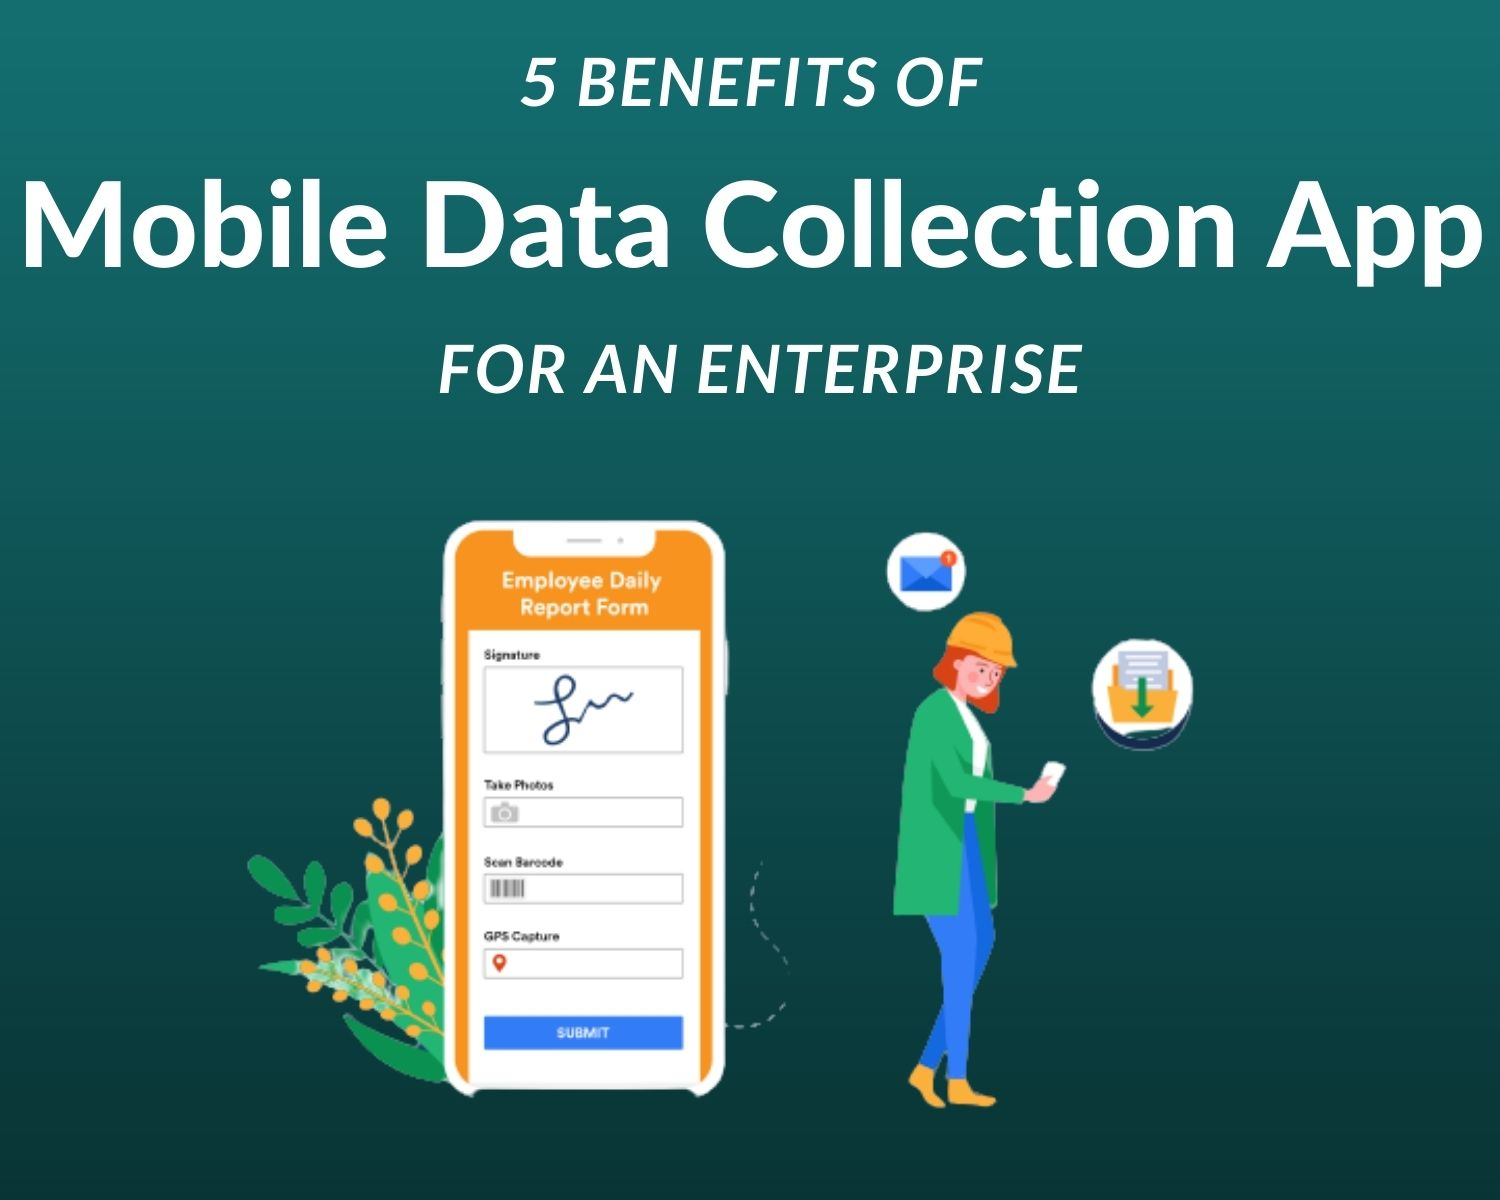 5 benefits of a Mobile Data collection app for an Enterprise